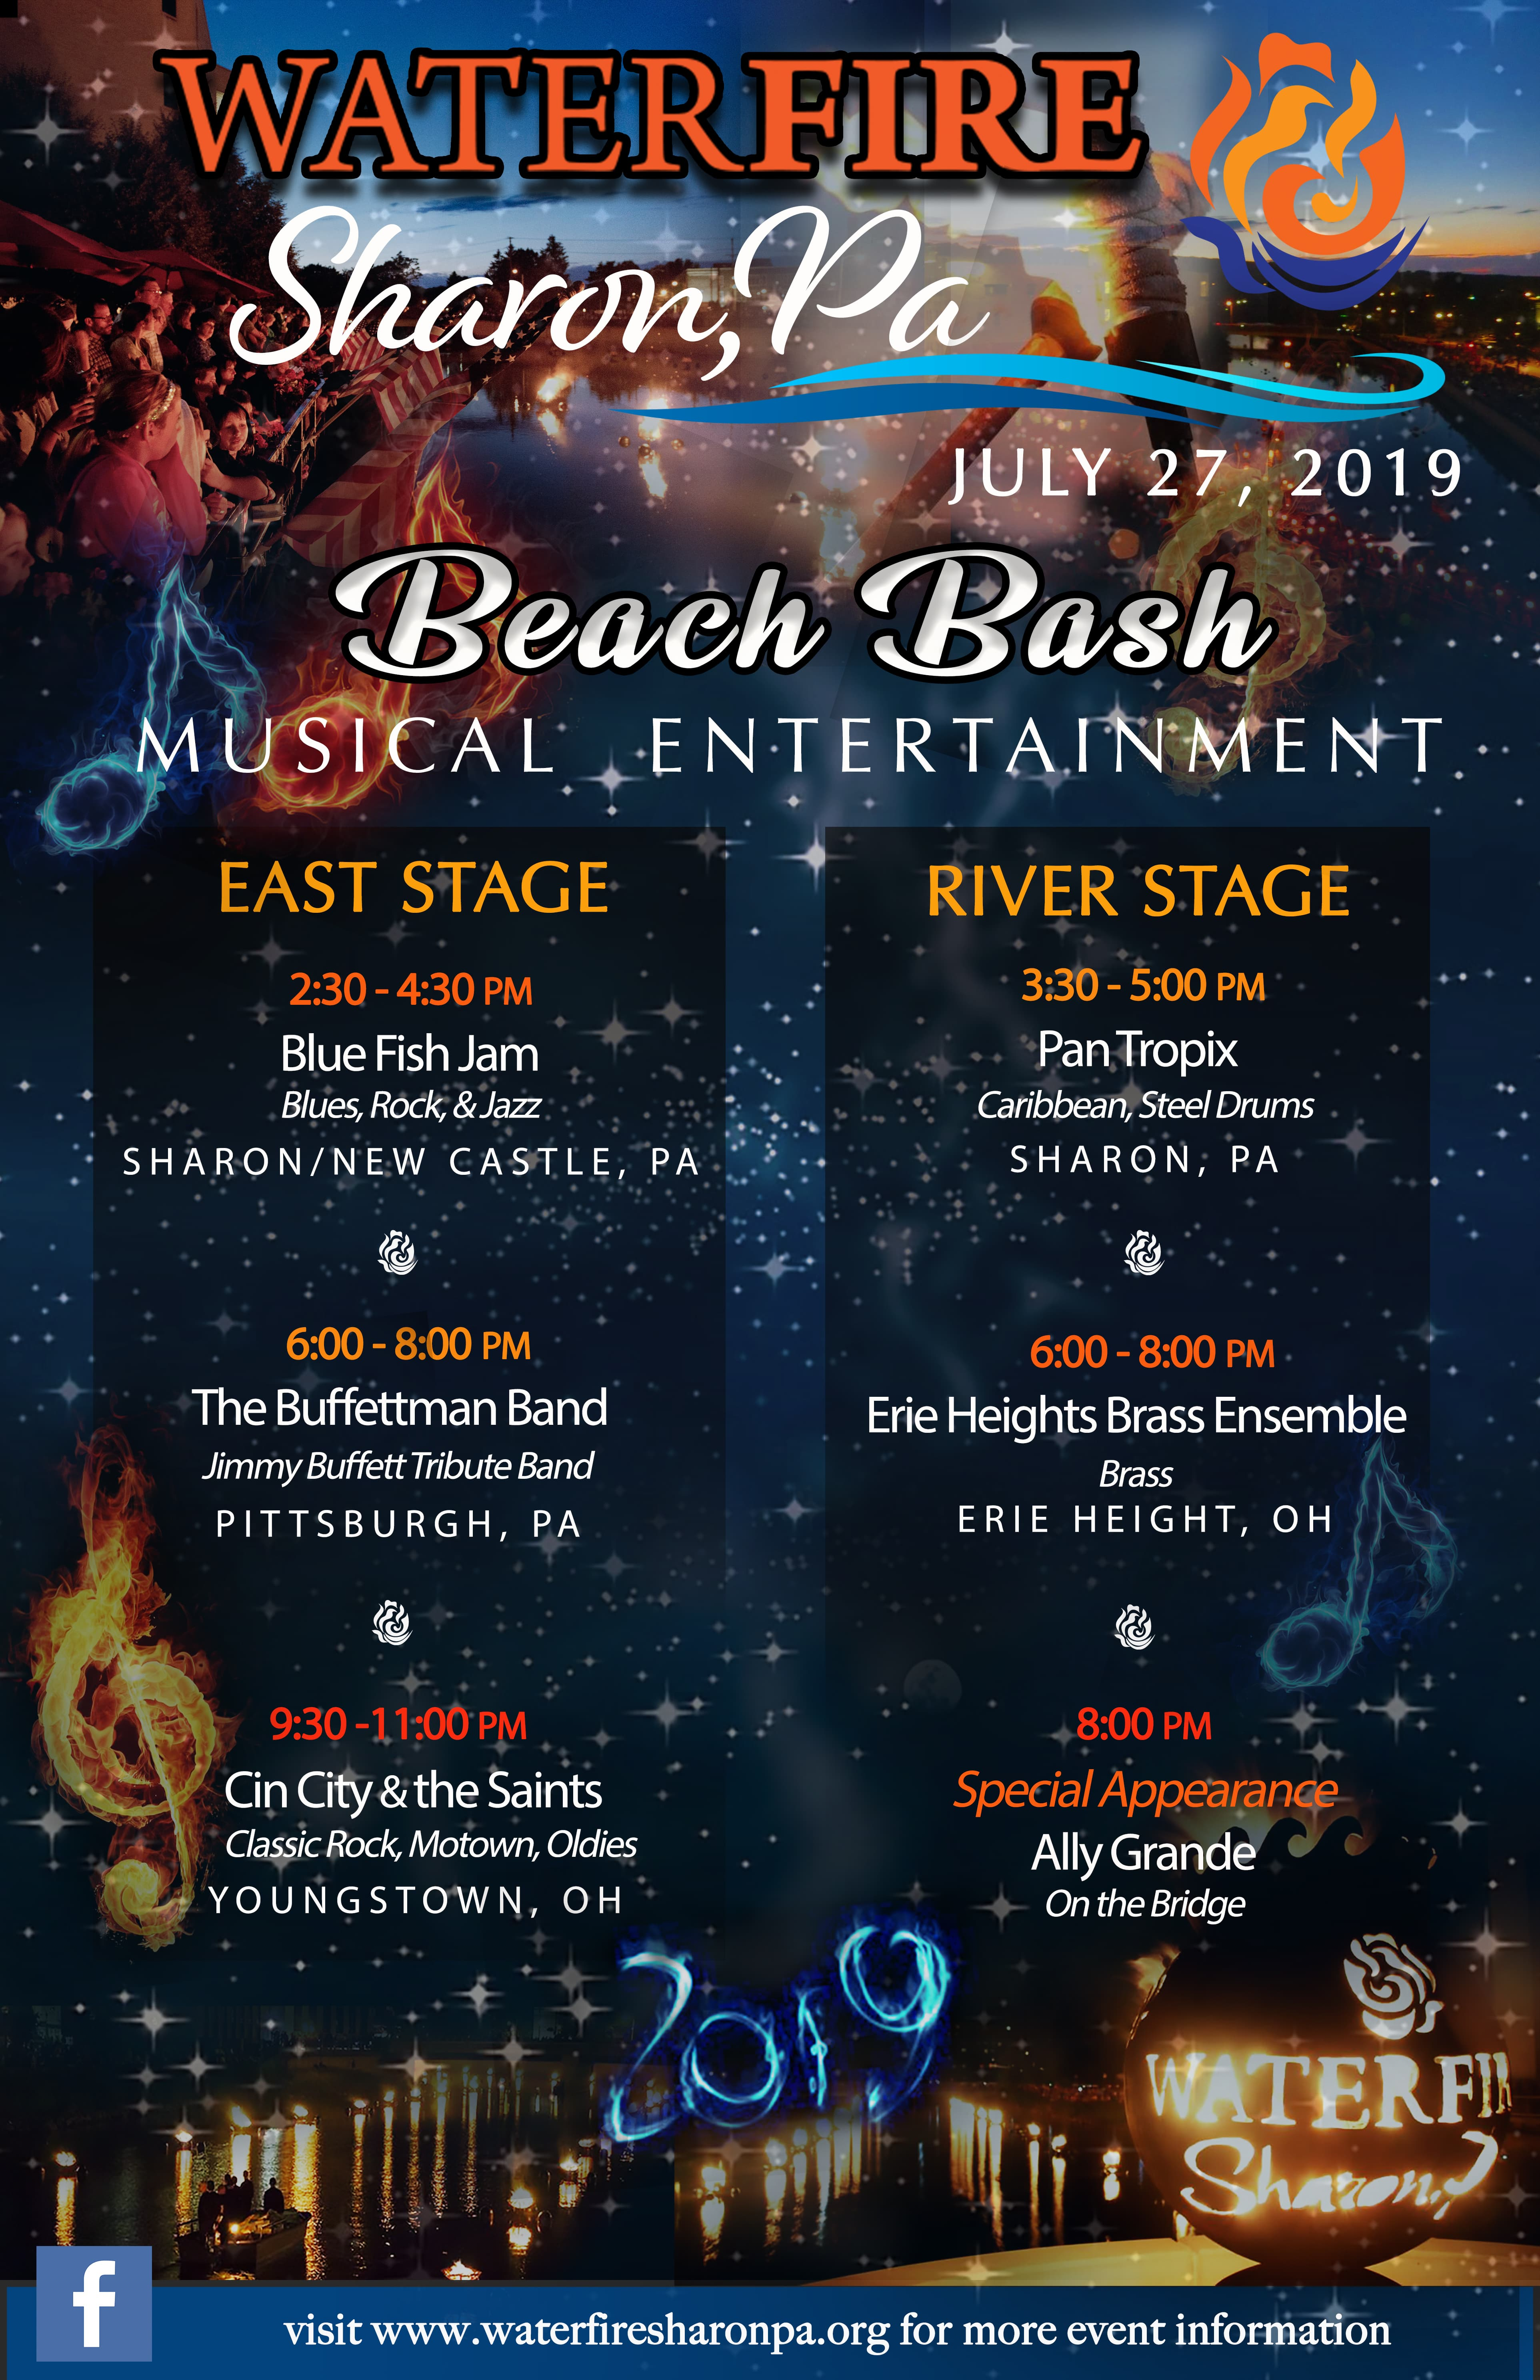 WaterFire, Sharon PA » July 27th, 2019: Beach Bash